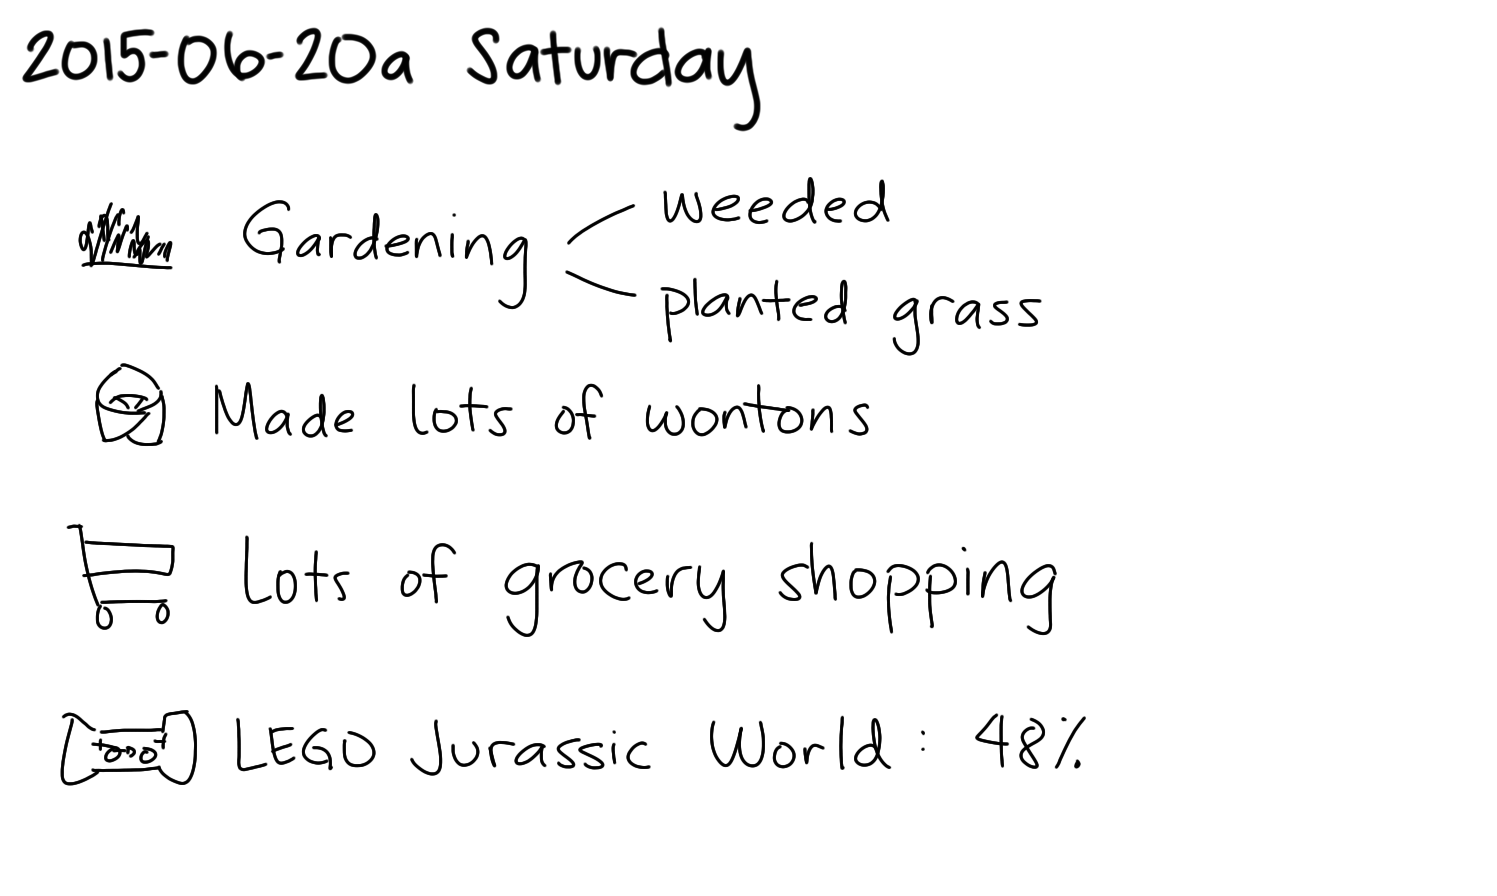 2015-06-20a Saturday -- index card #journal.png